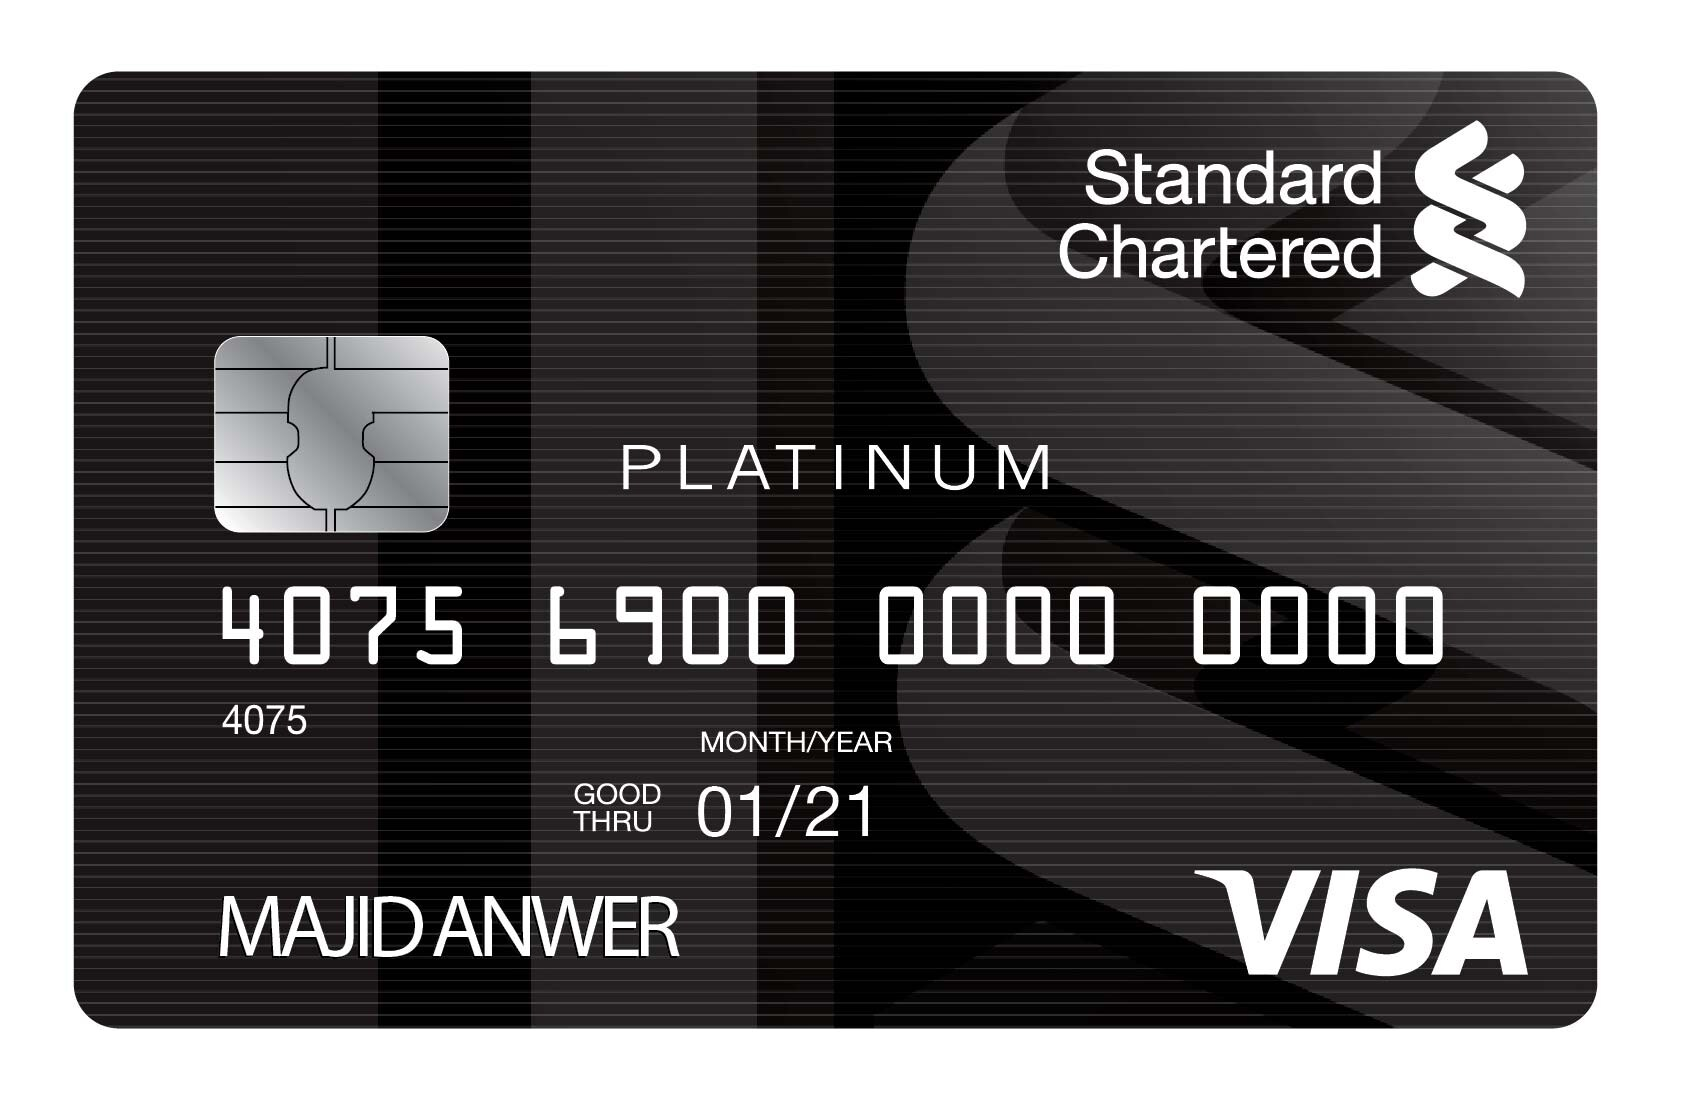 Standard Chartered Visa Platinum Credit Card pakistan